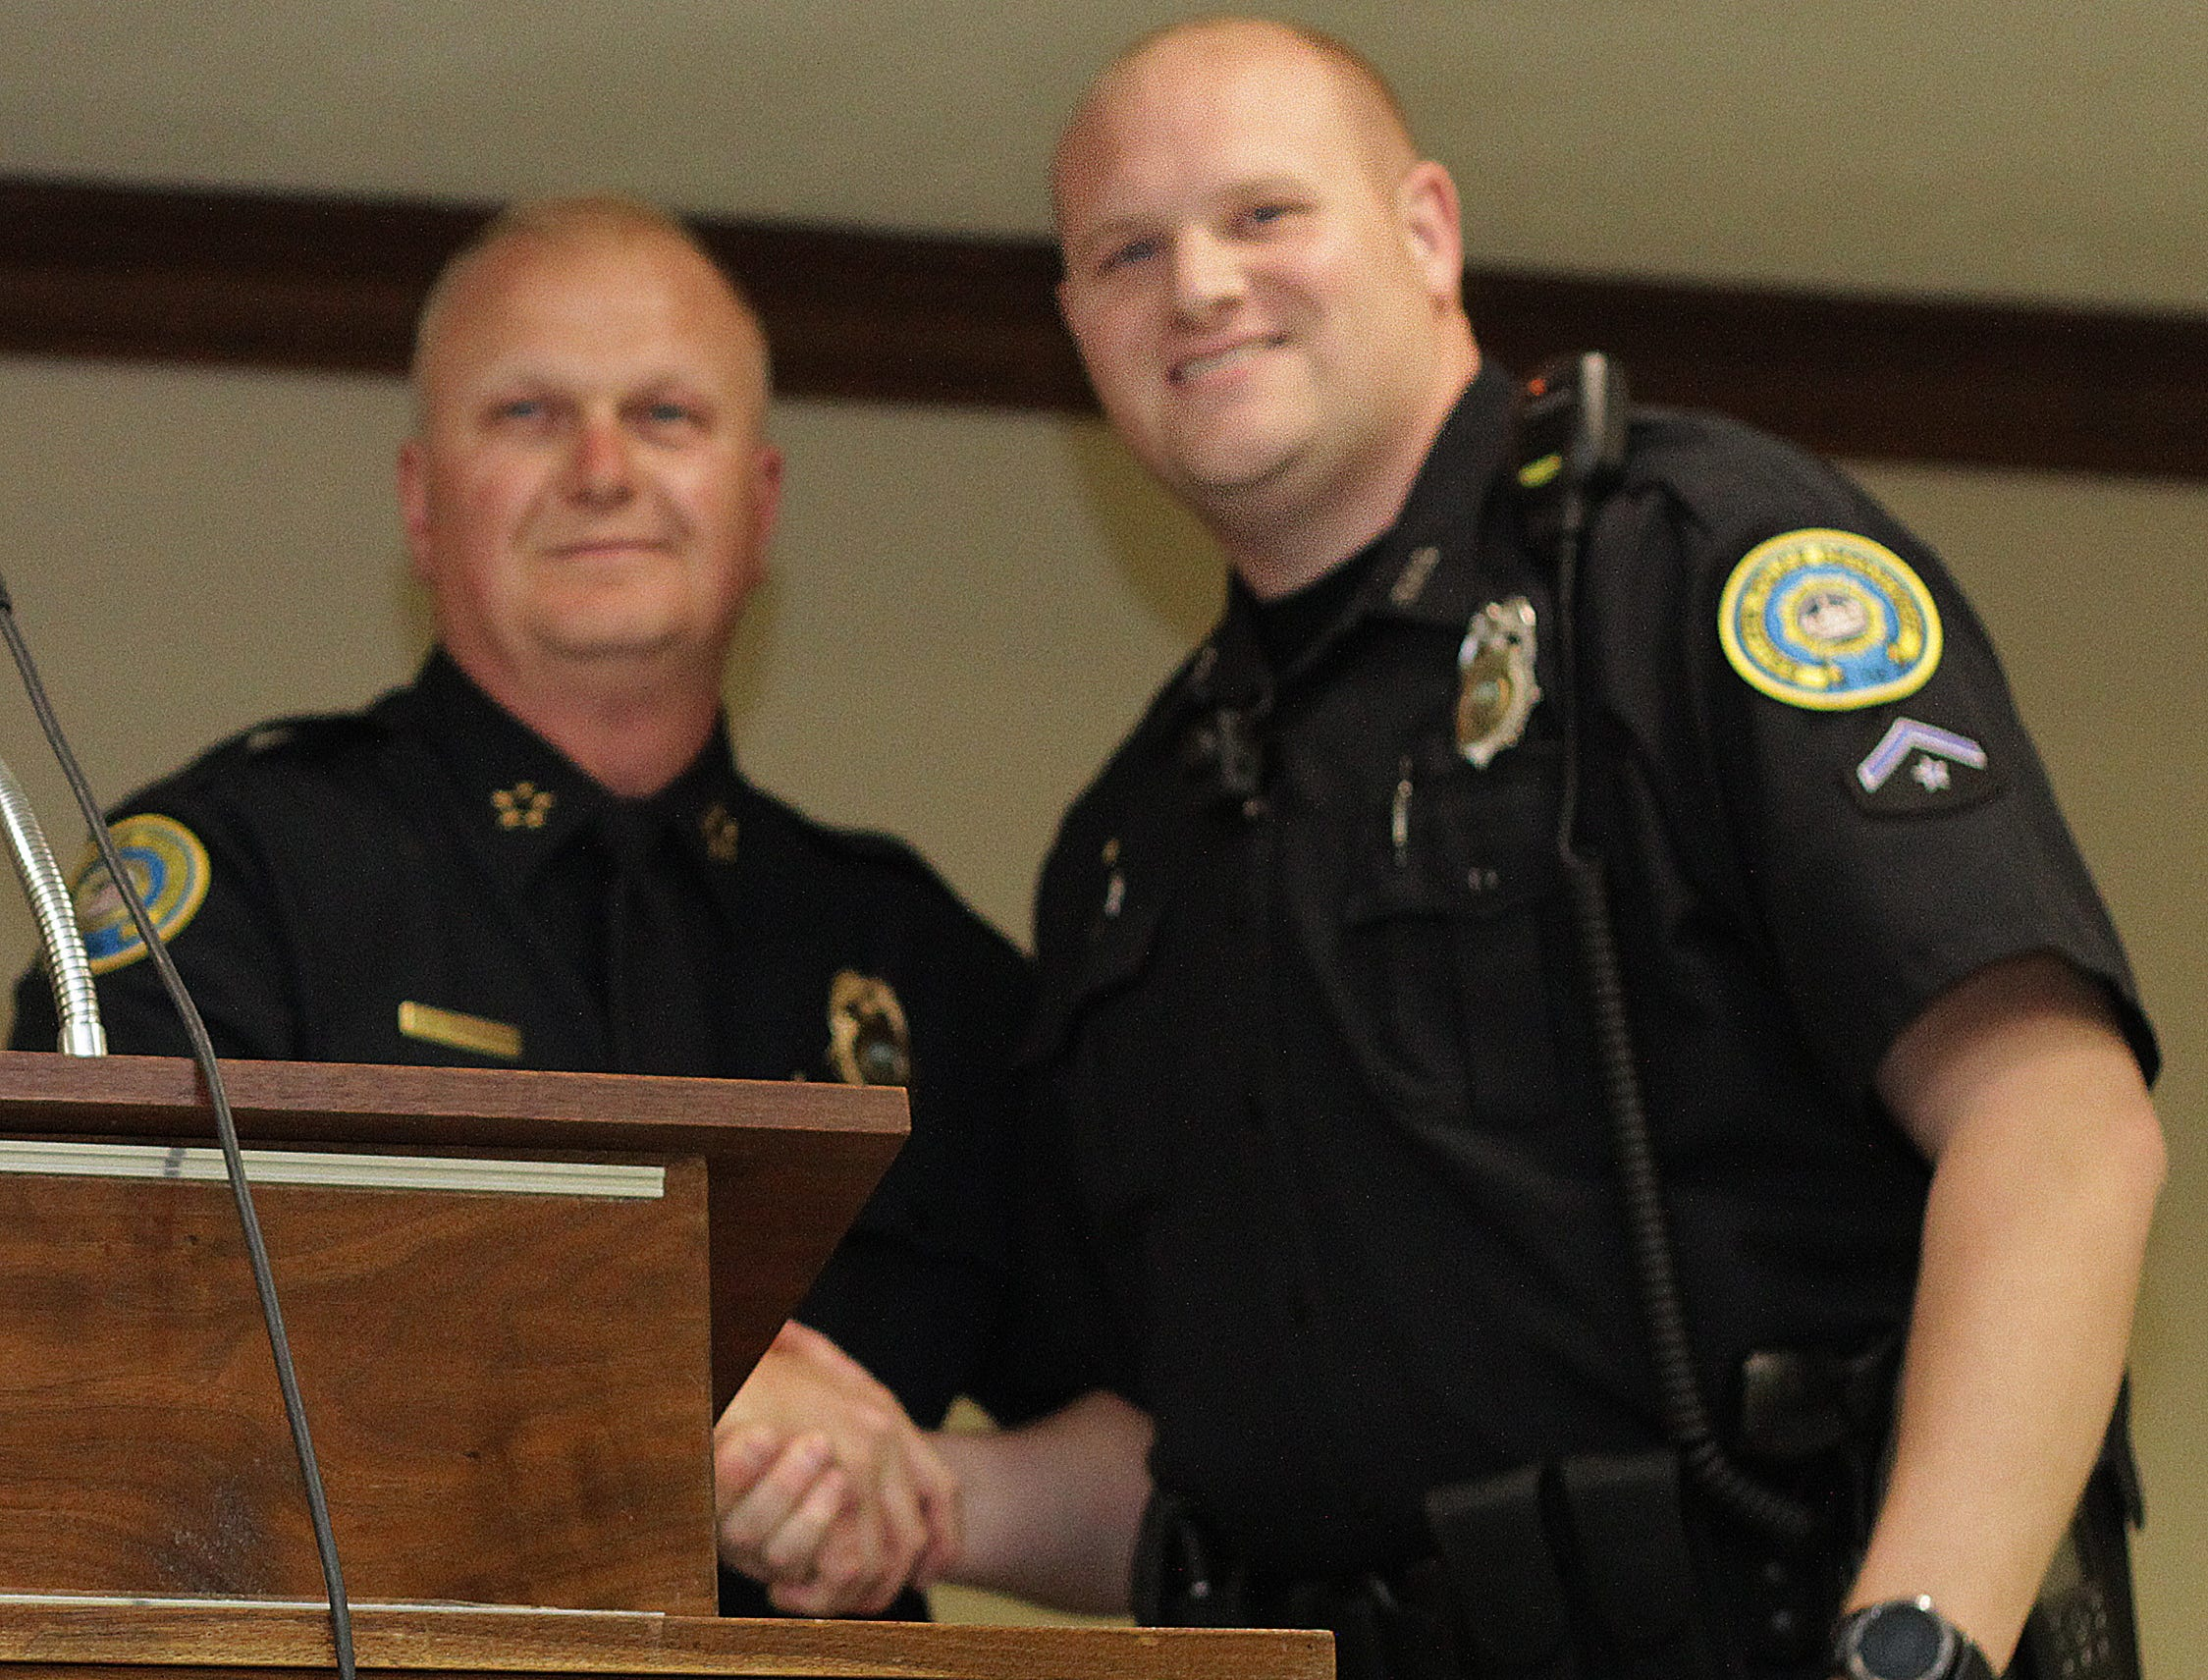 Police Chief Donald Bandy presents a Meritorious Service Award to Officer Kevin Jackson at the Gallatin Police Dept. Awards Ceremony for 2018 Achievements on Thursday, March 21, 2019.